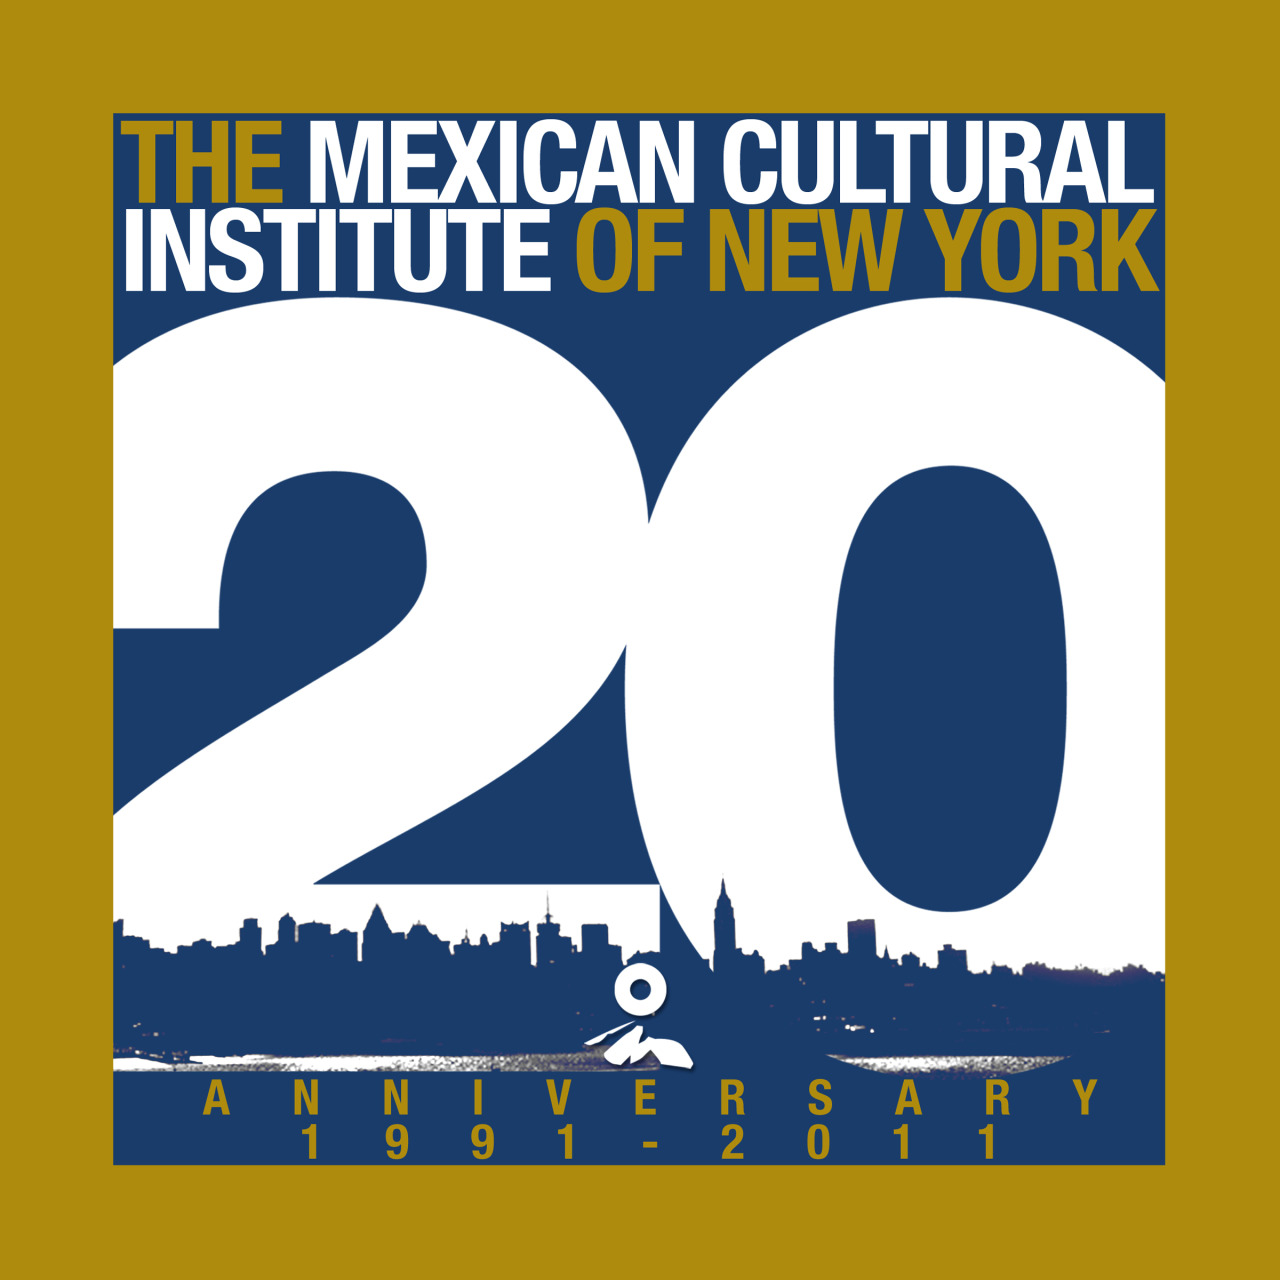 Annual Report 2011,  designed for the Mexican Cultural Institute of New York